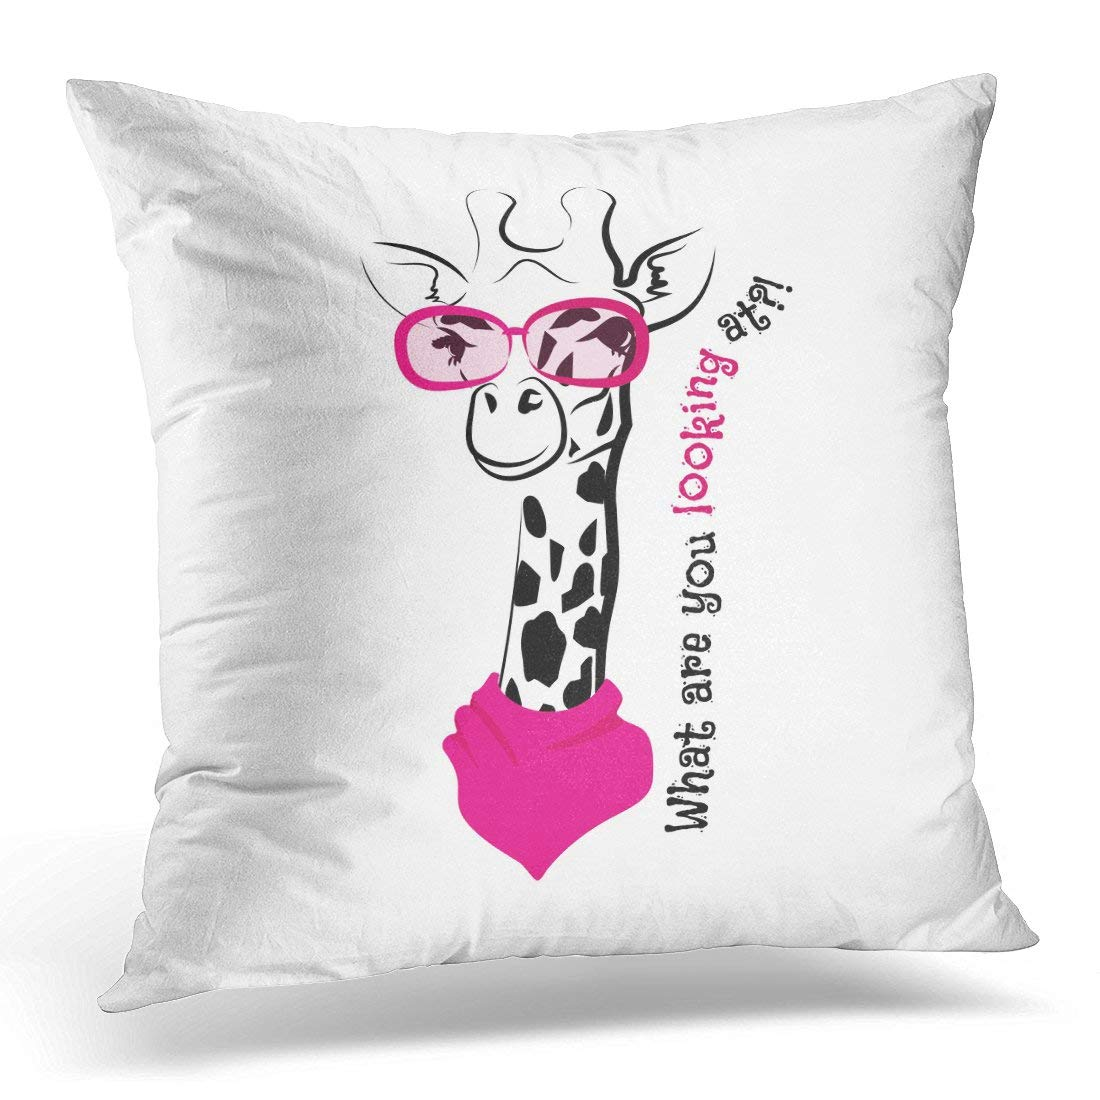 ARHOME Funny Giraffe Pink Sunglasses Label Trend Season Lettering Creative Phrase Youth Doodle Sketch White Had Pillow Case Pillow Cover 20x20 inch